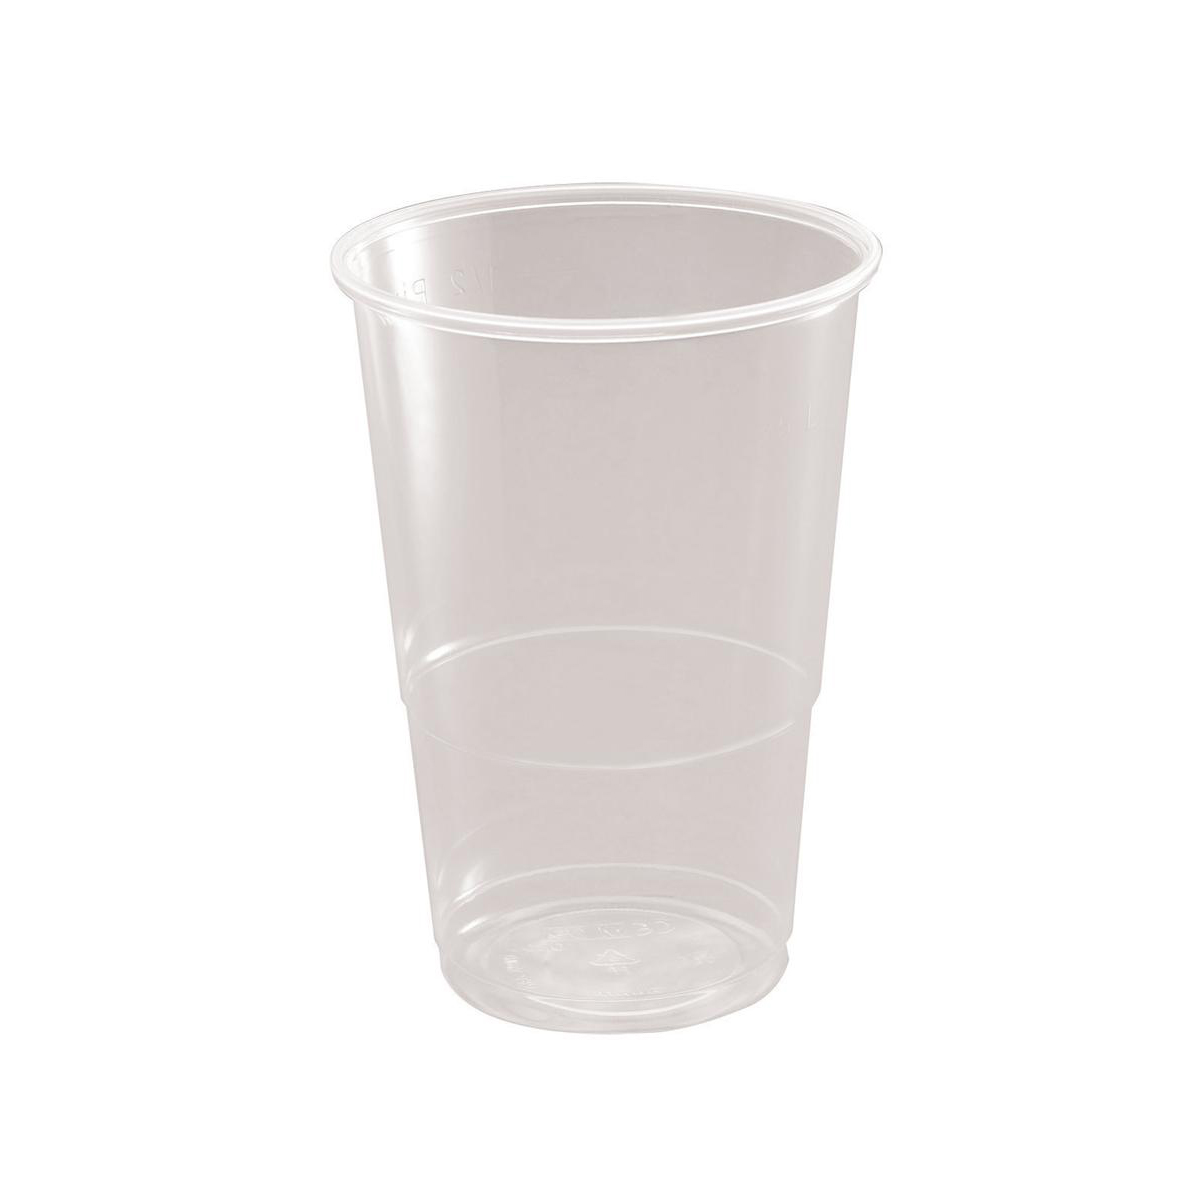 Tumbler CE Marked Polypropylene Tumbler Half Pint [Pack 50]